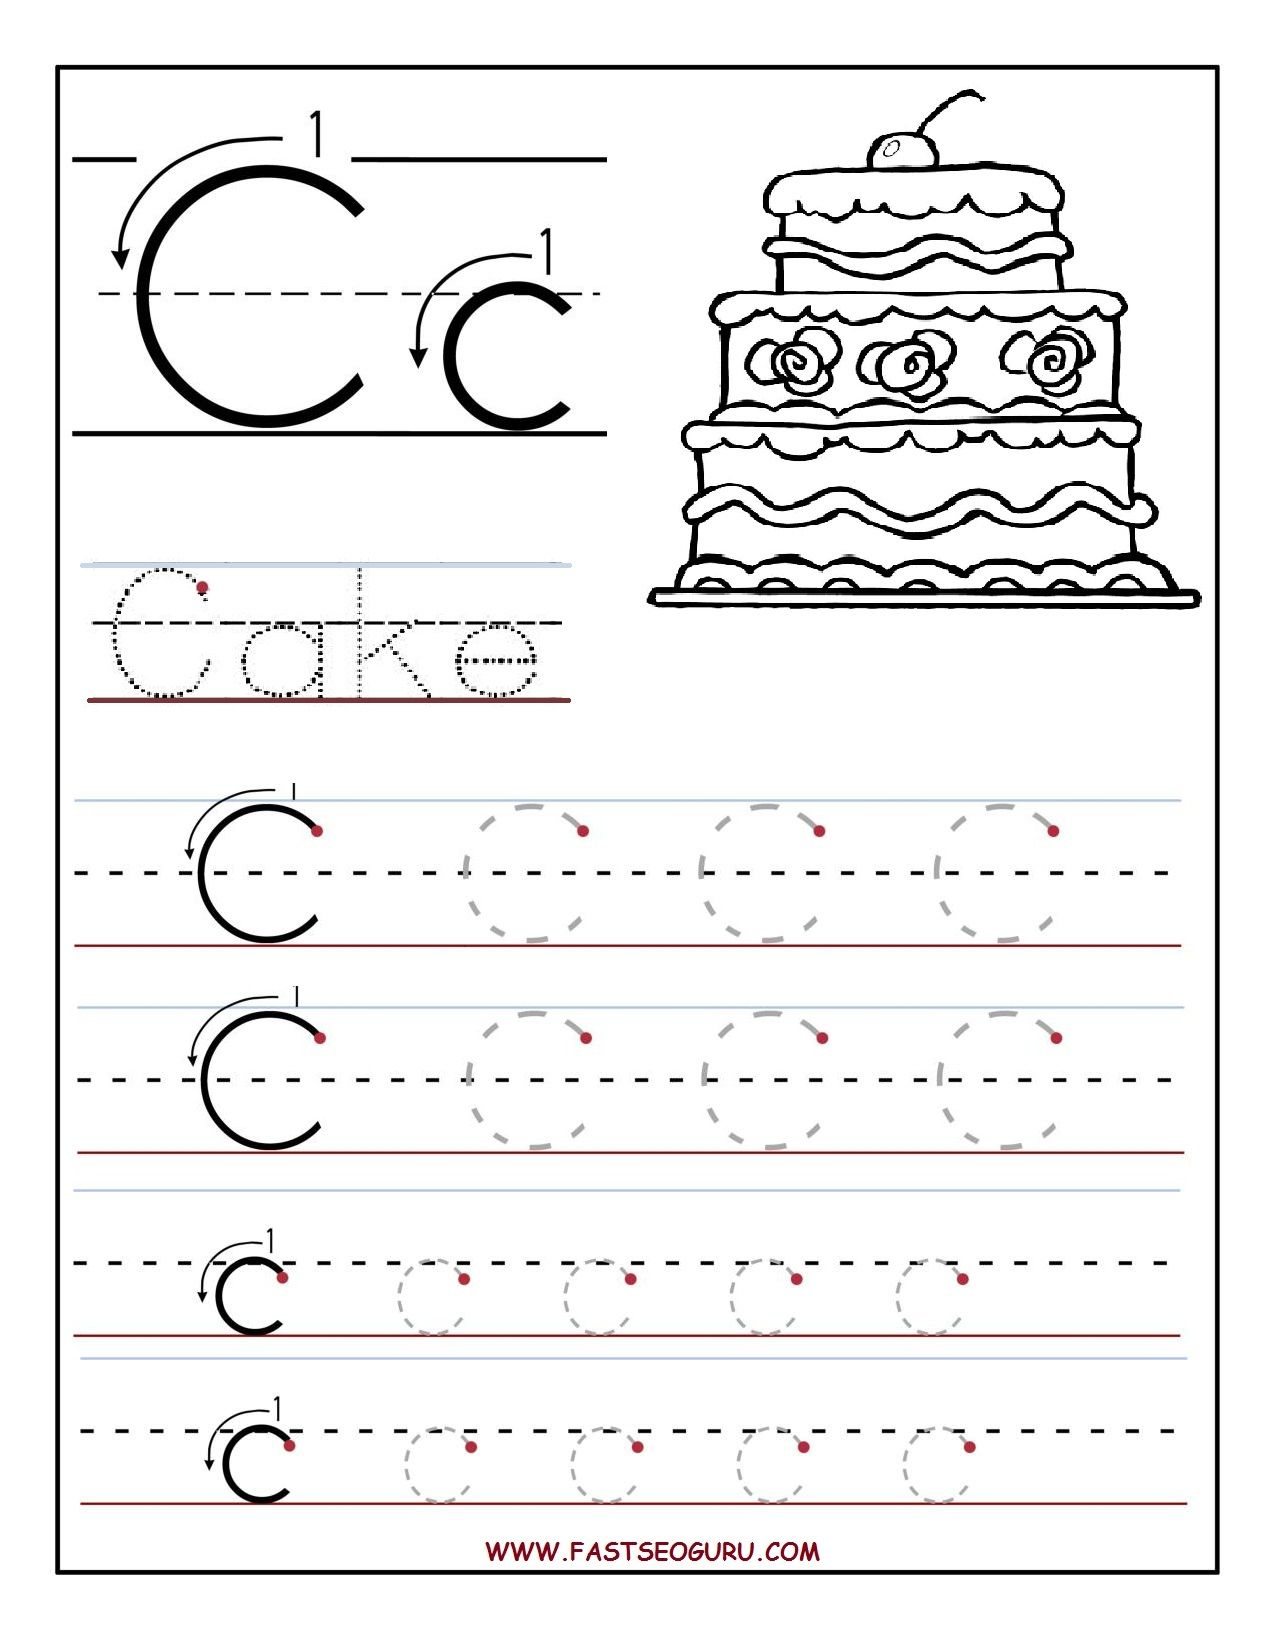 Printable Letter C Tracing Worksheets For Preschool within Letter C Worksheets Printable